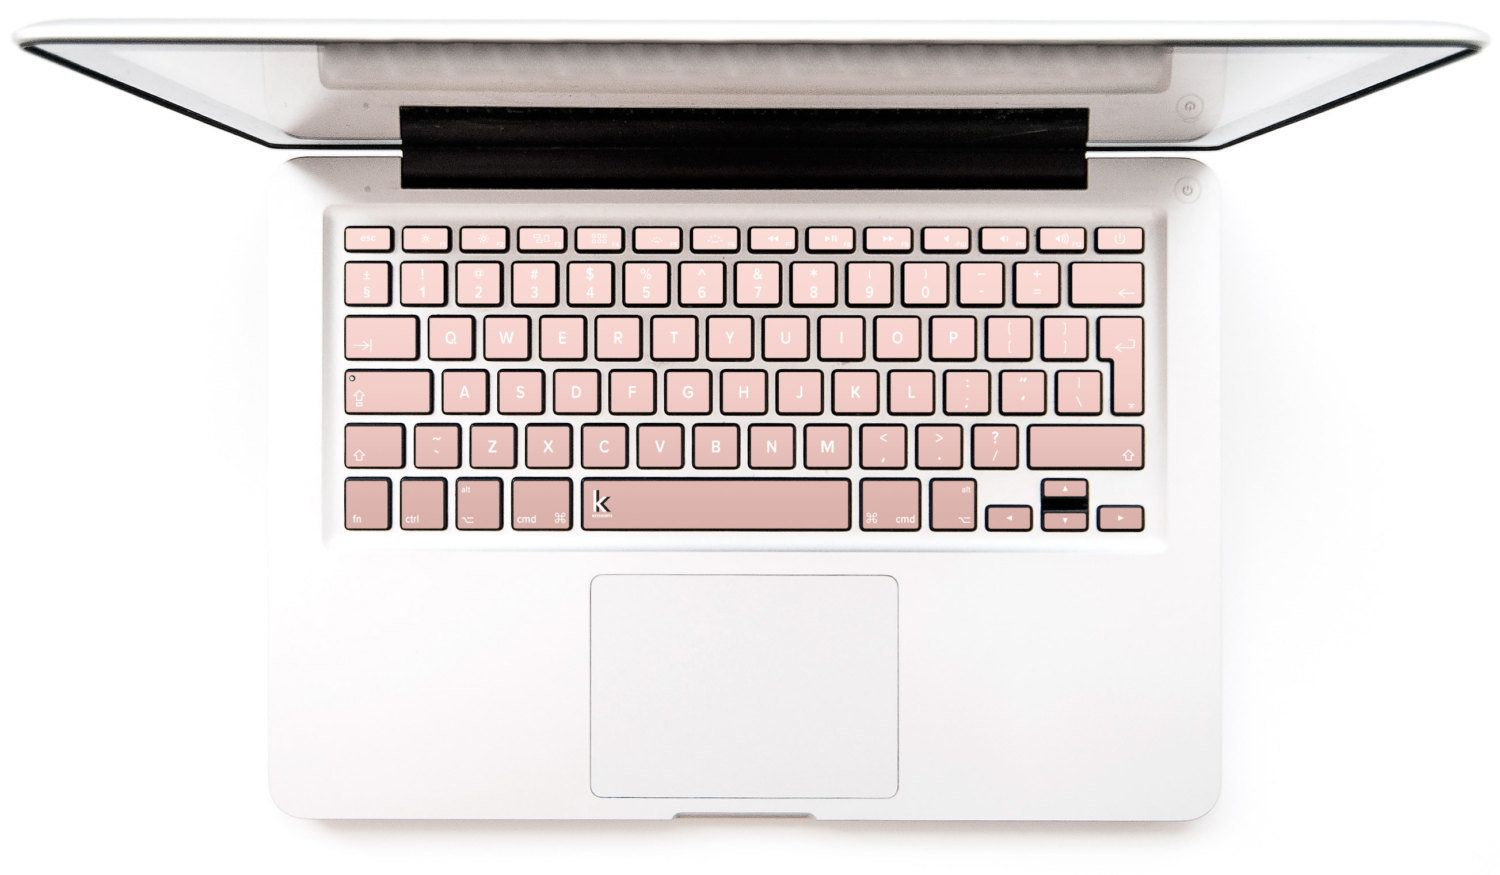 """Rose Gold OmbreMacbook Keyboard Decal, $14.95, <a href=""""https://www.etsy.com/listing/290272009/rose-gold-ombre-macbook-"""